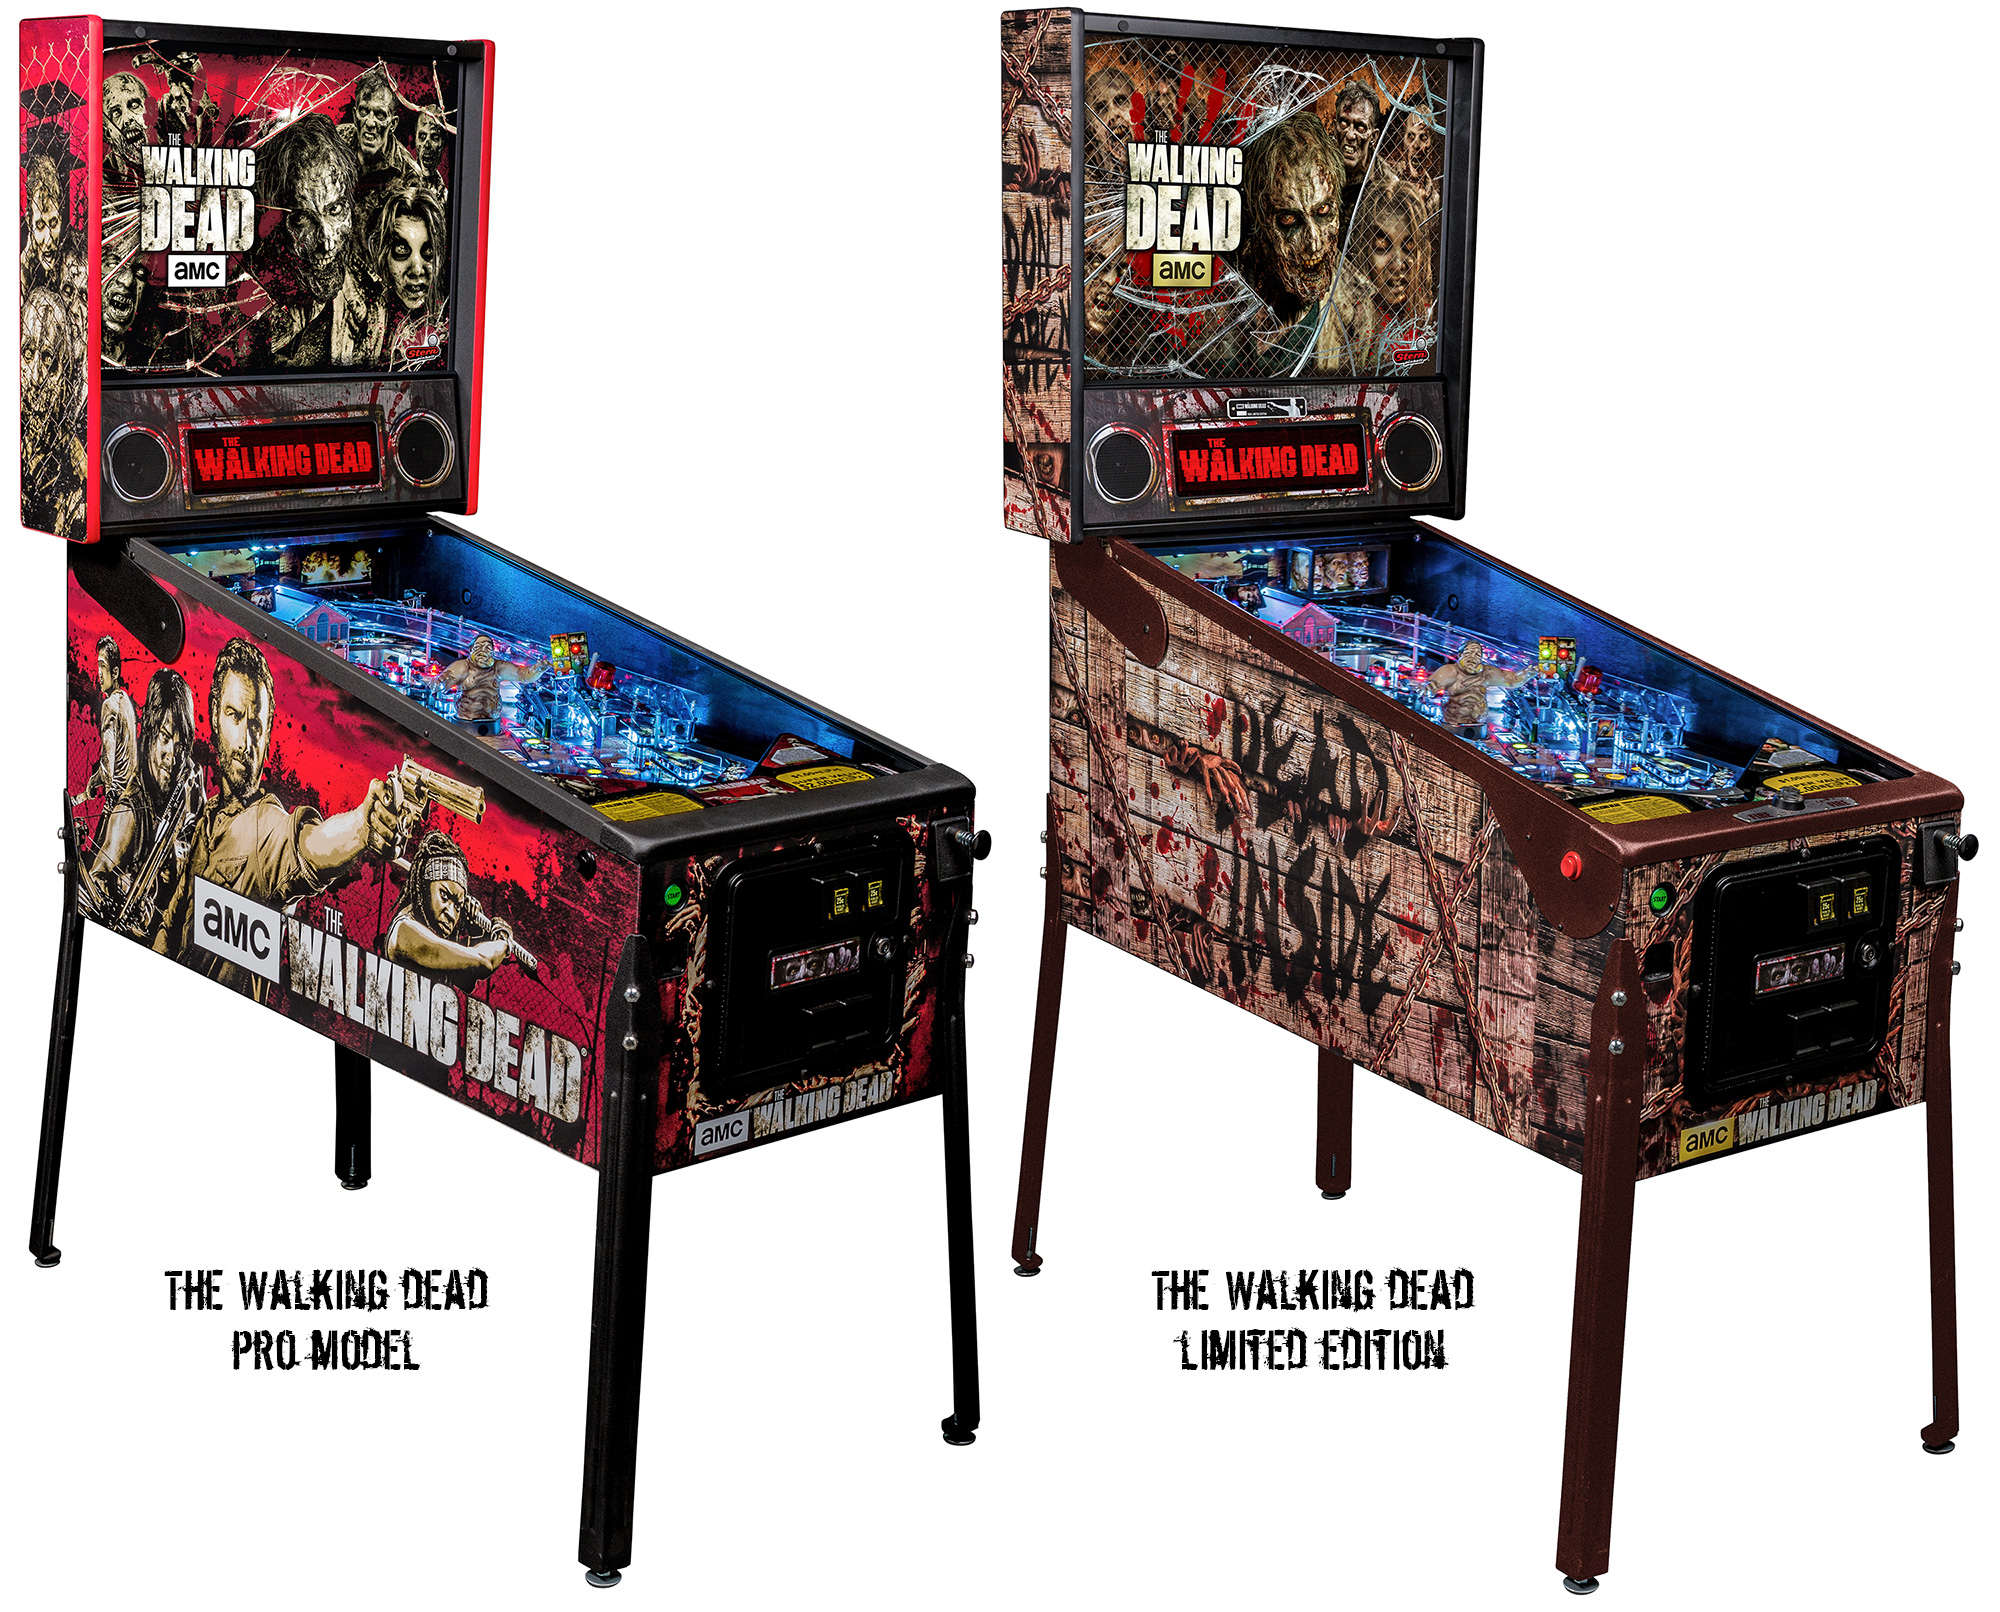 Got bit, fever hit: The Walking Dead pinball shambles into